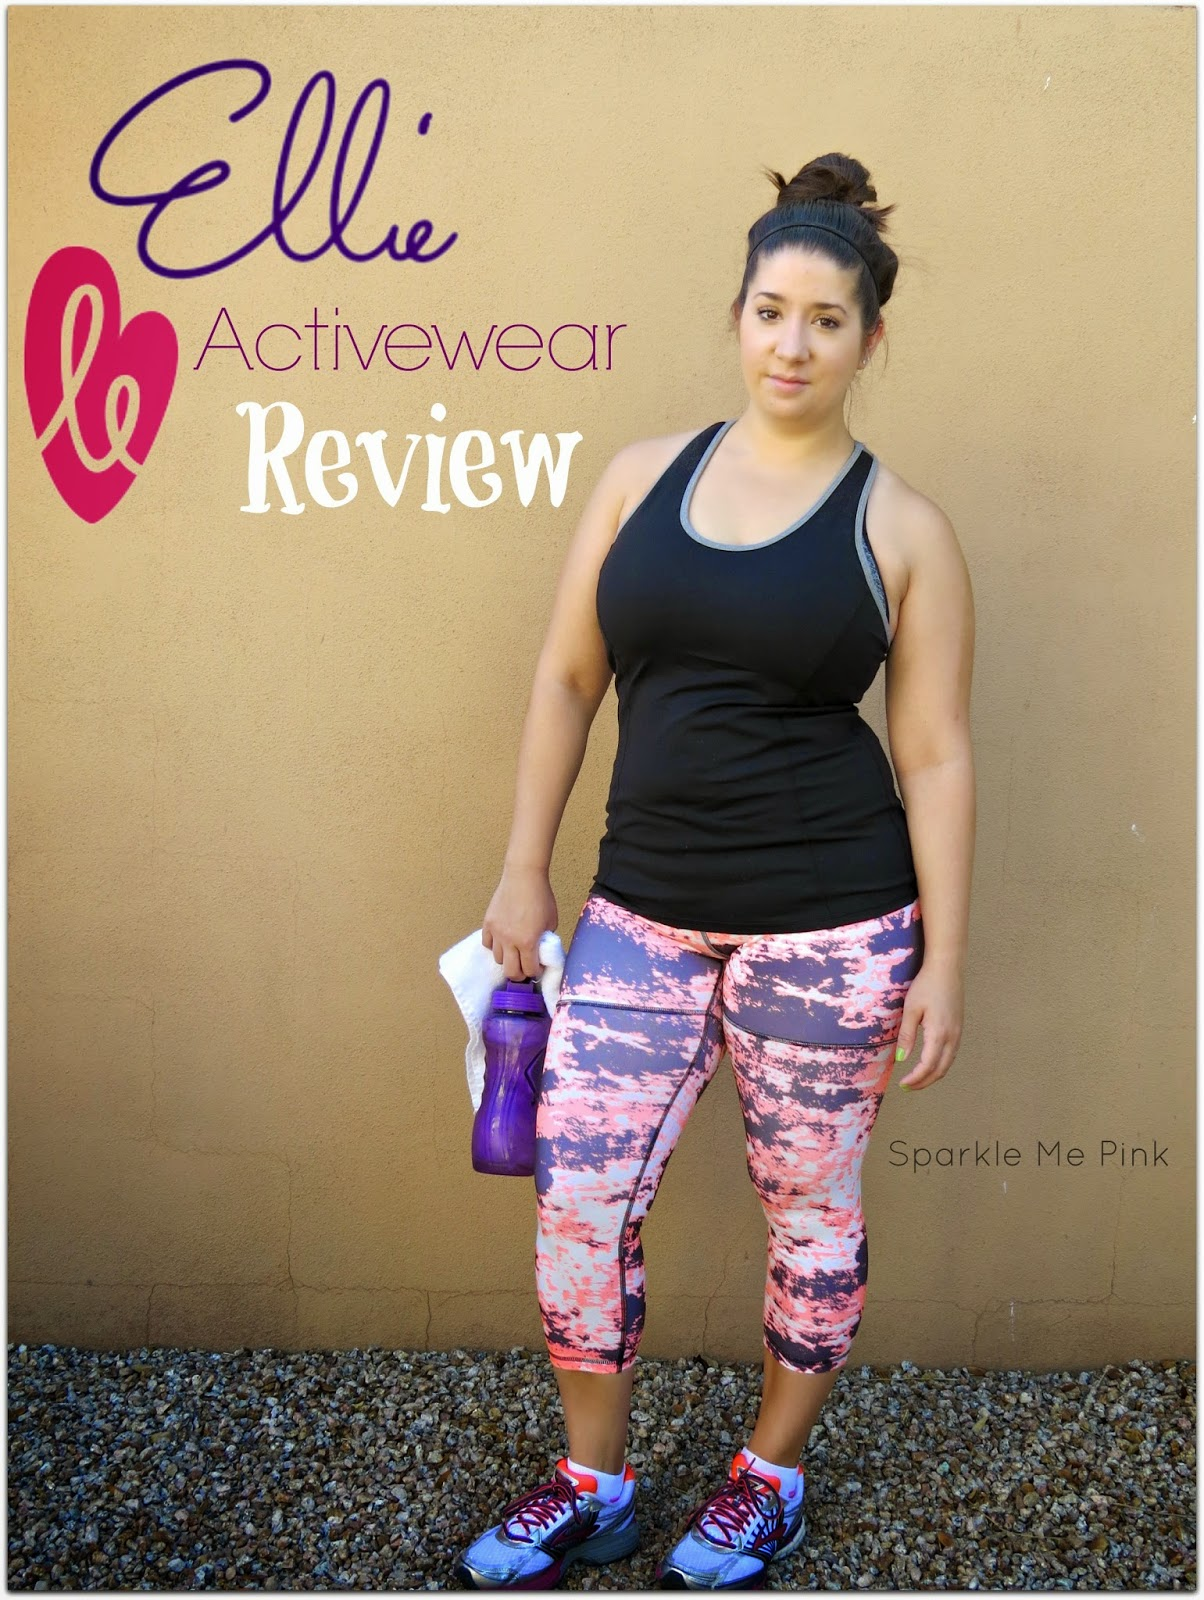 Sparkle Me Pink: My Fav Workout Apparel